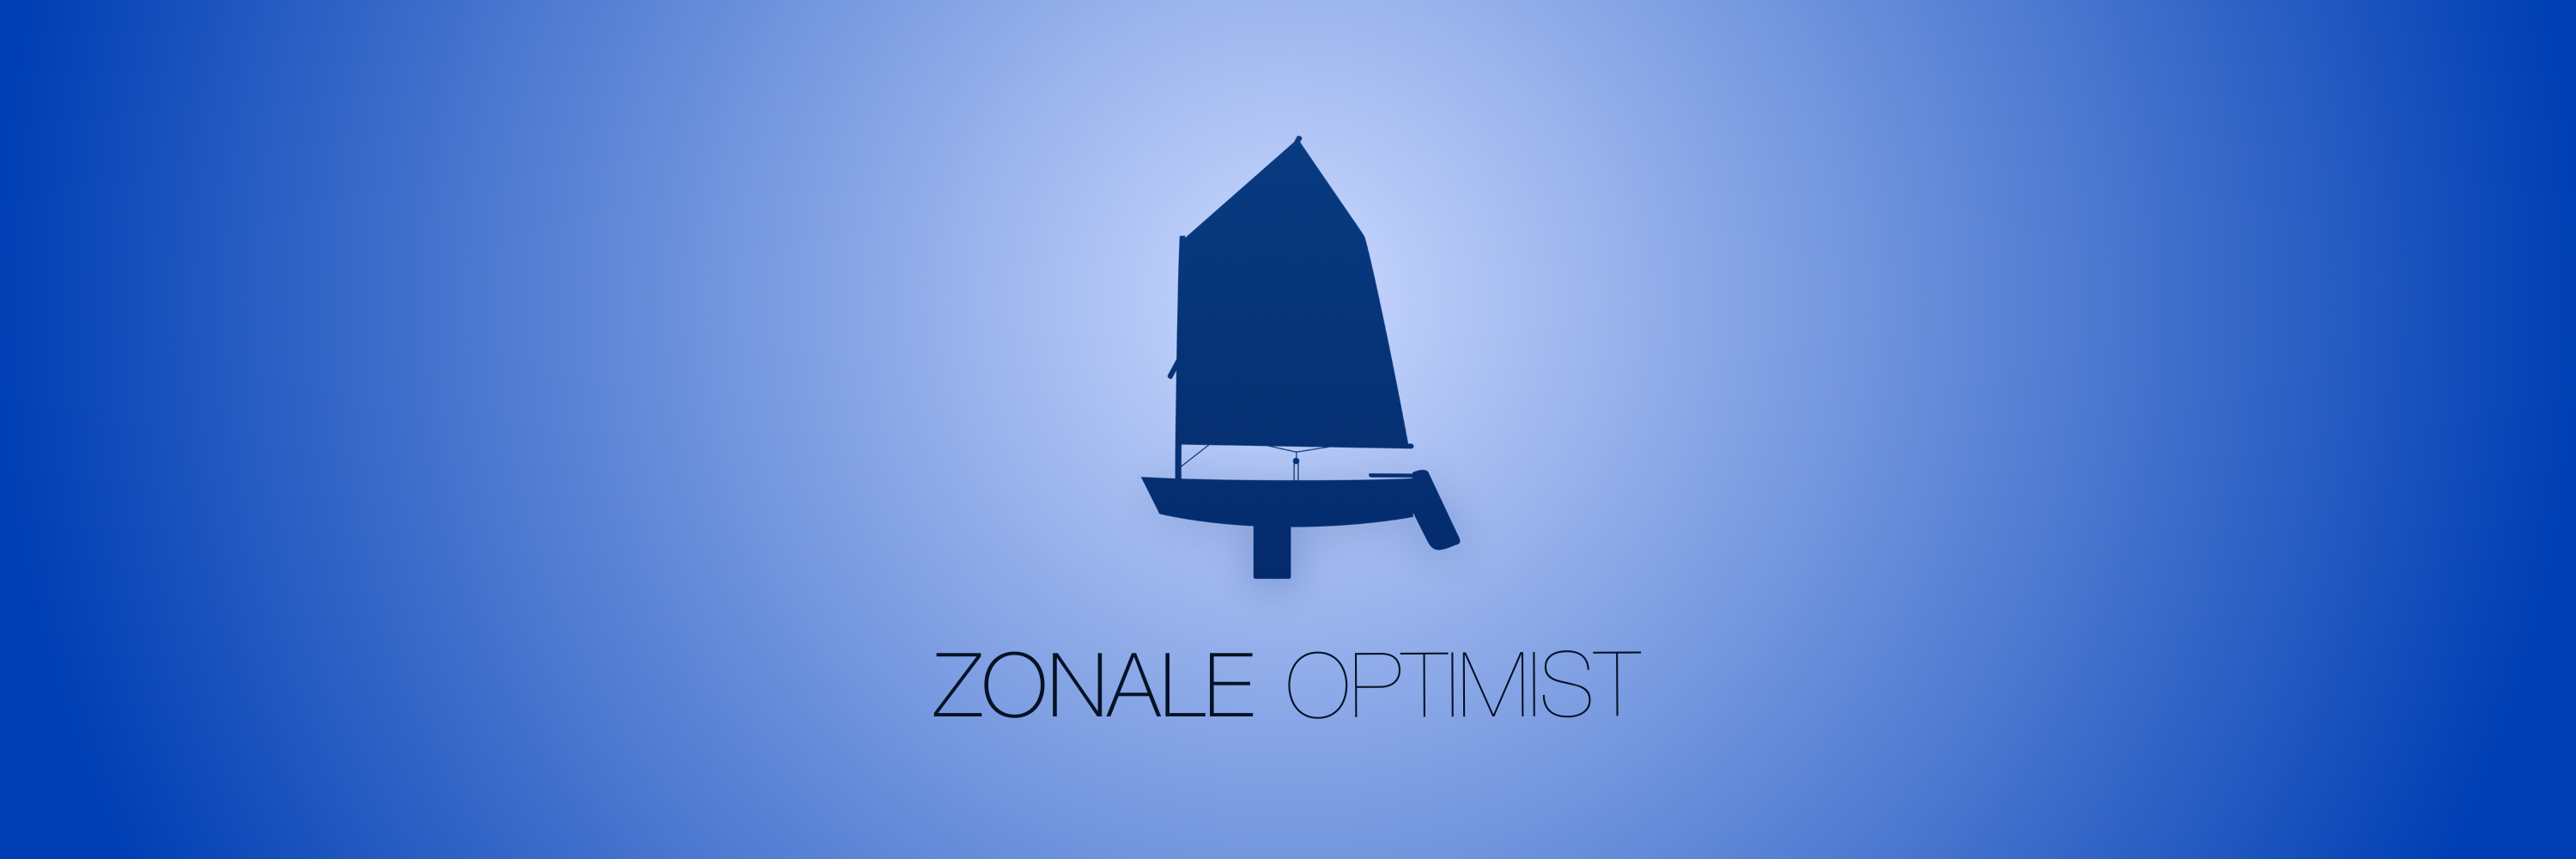 Zonale Optimist